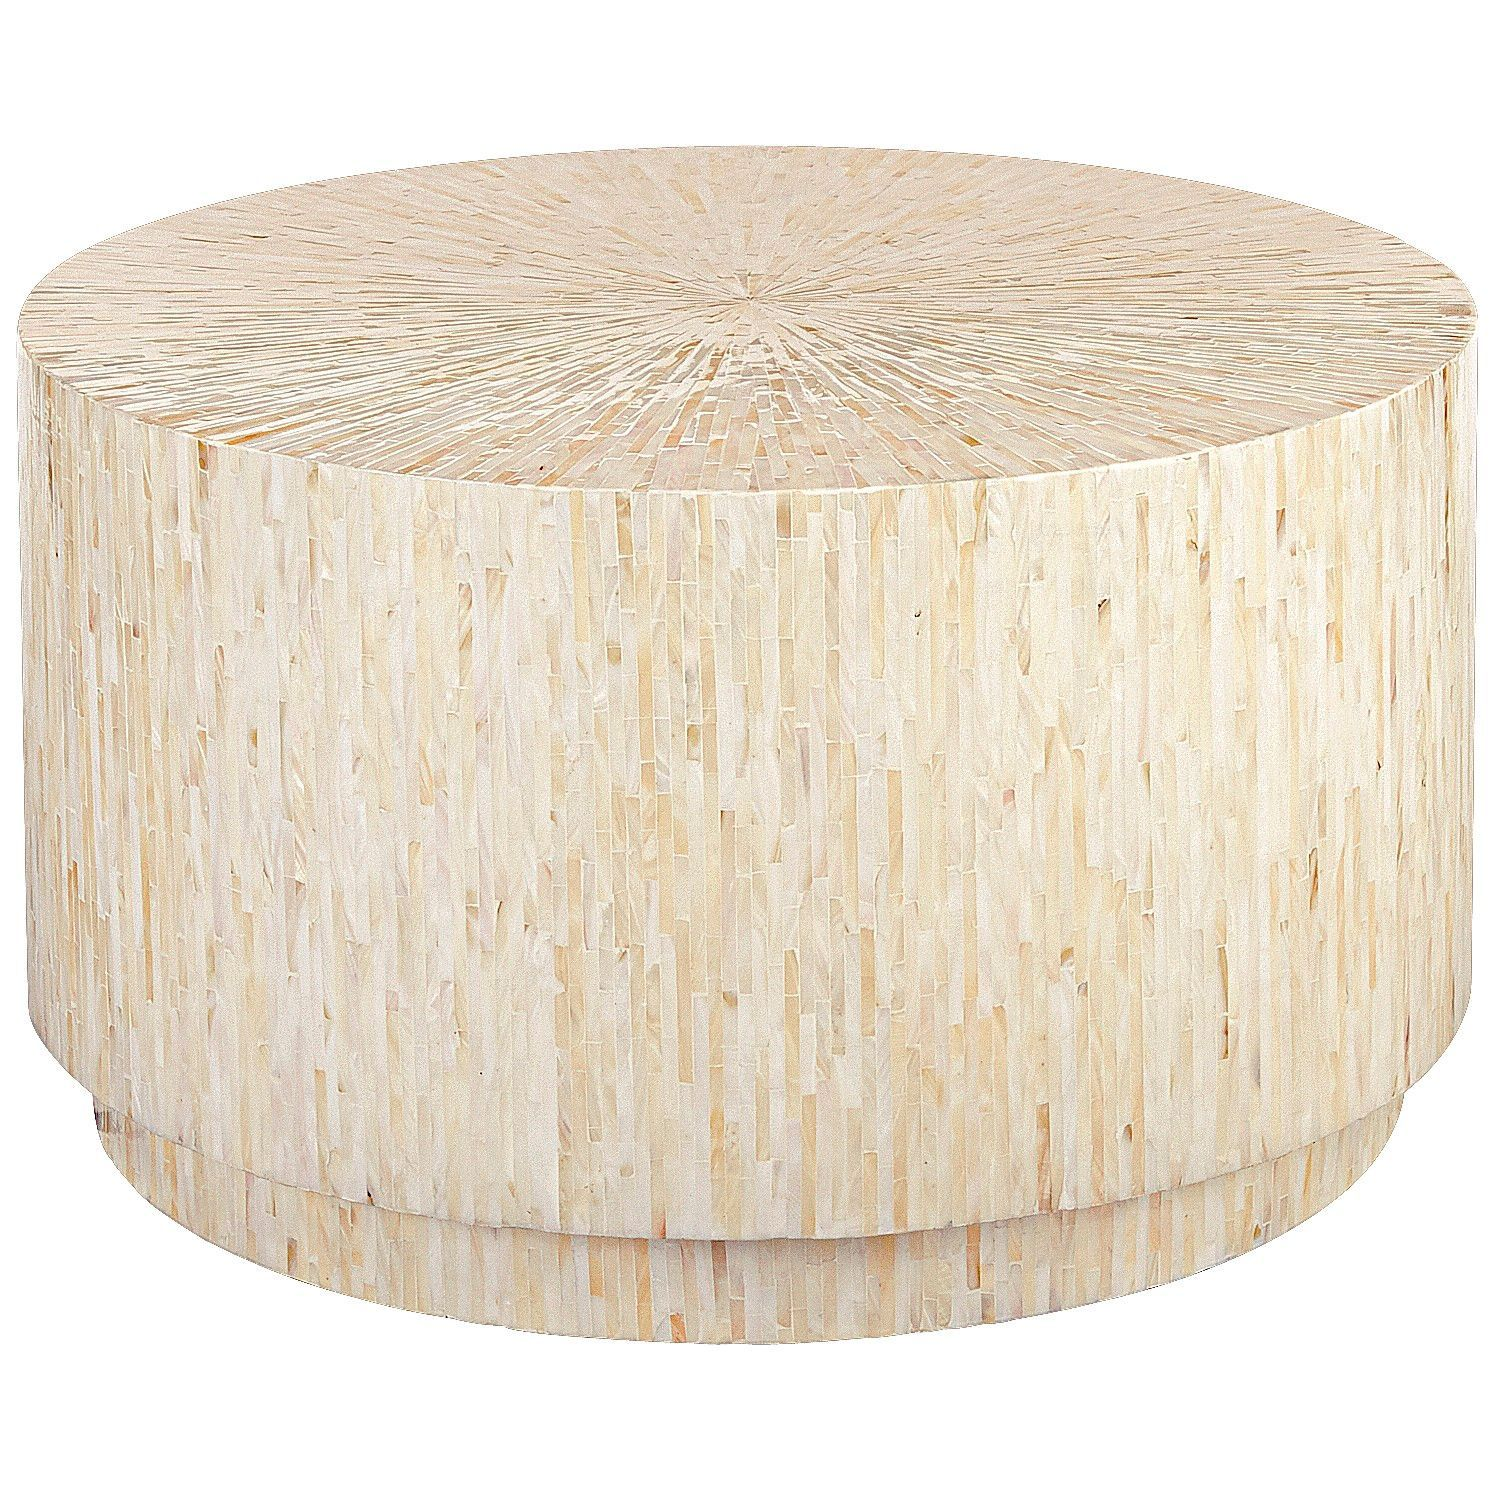 Phenomenal Mother Of Pearl Round Coffee Table Shealy In 2019 Drum Pdpeps Interior Chair Design Pdpepsorg